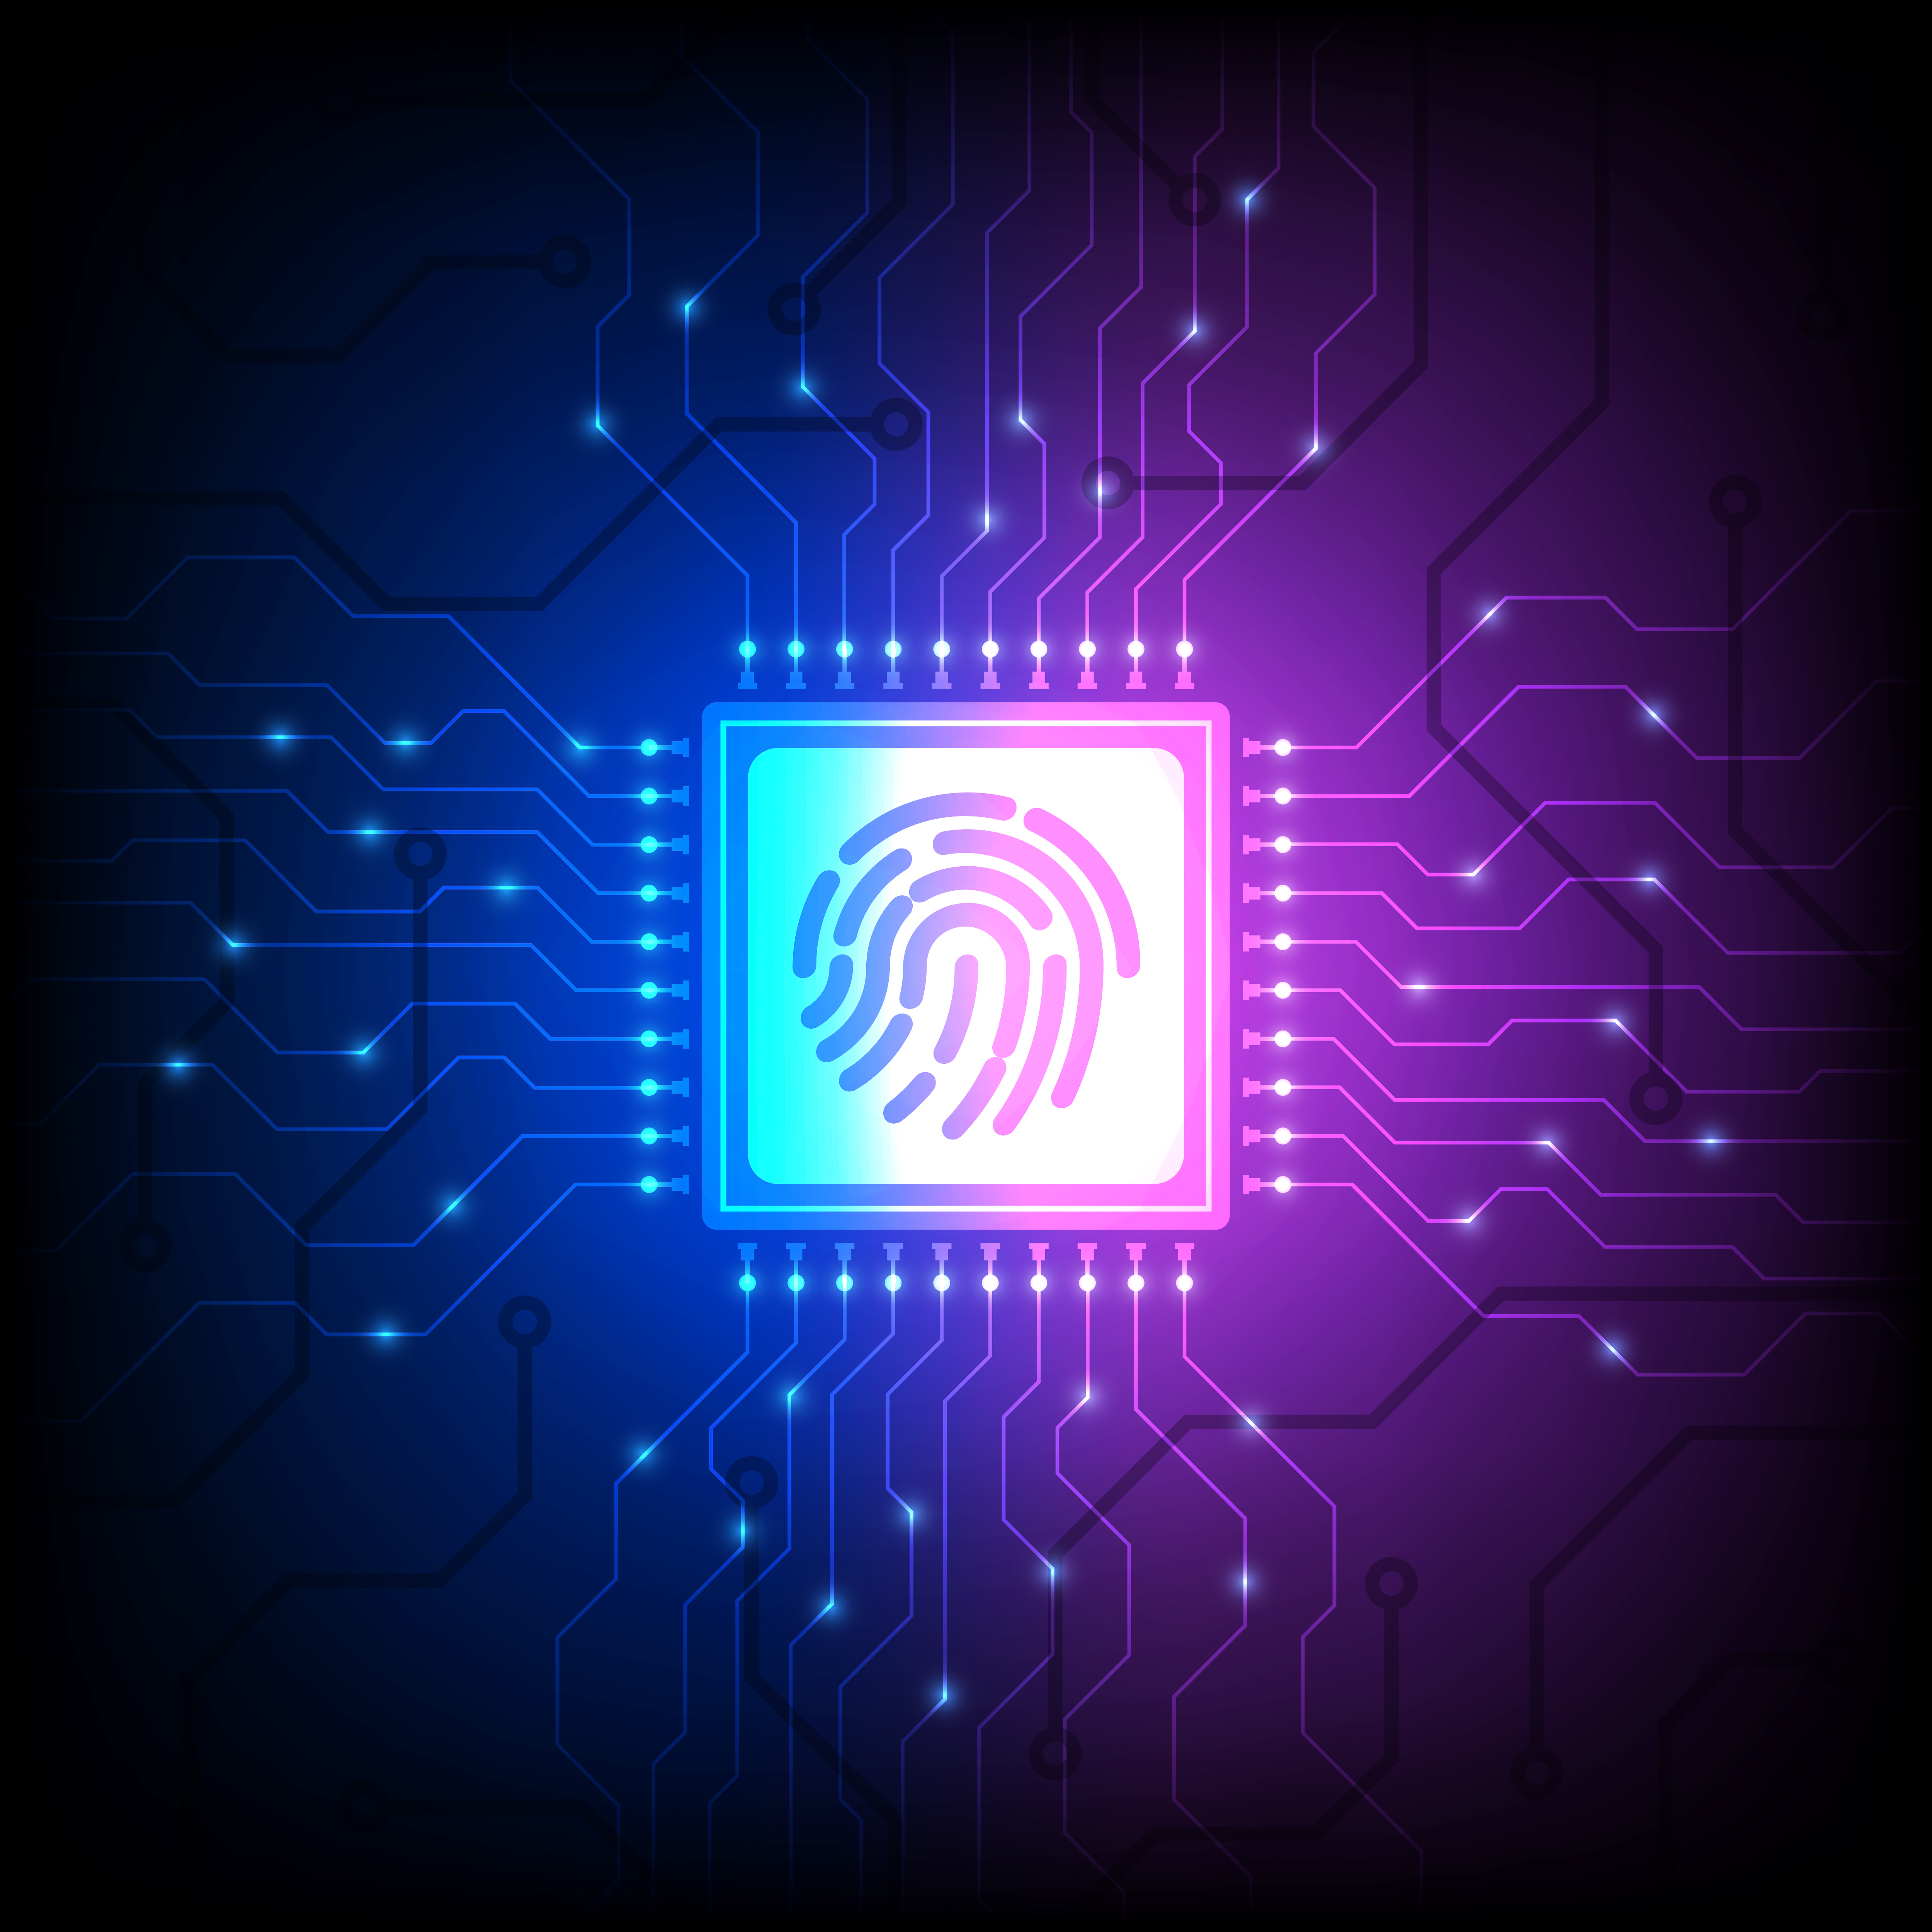 Hologram identity chip on blue and purple gradient vector